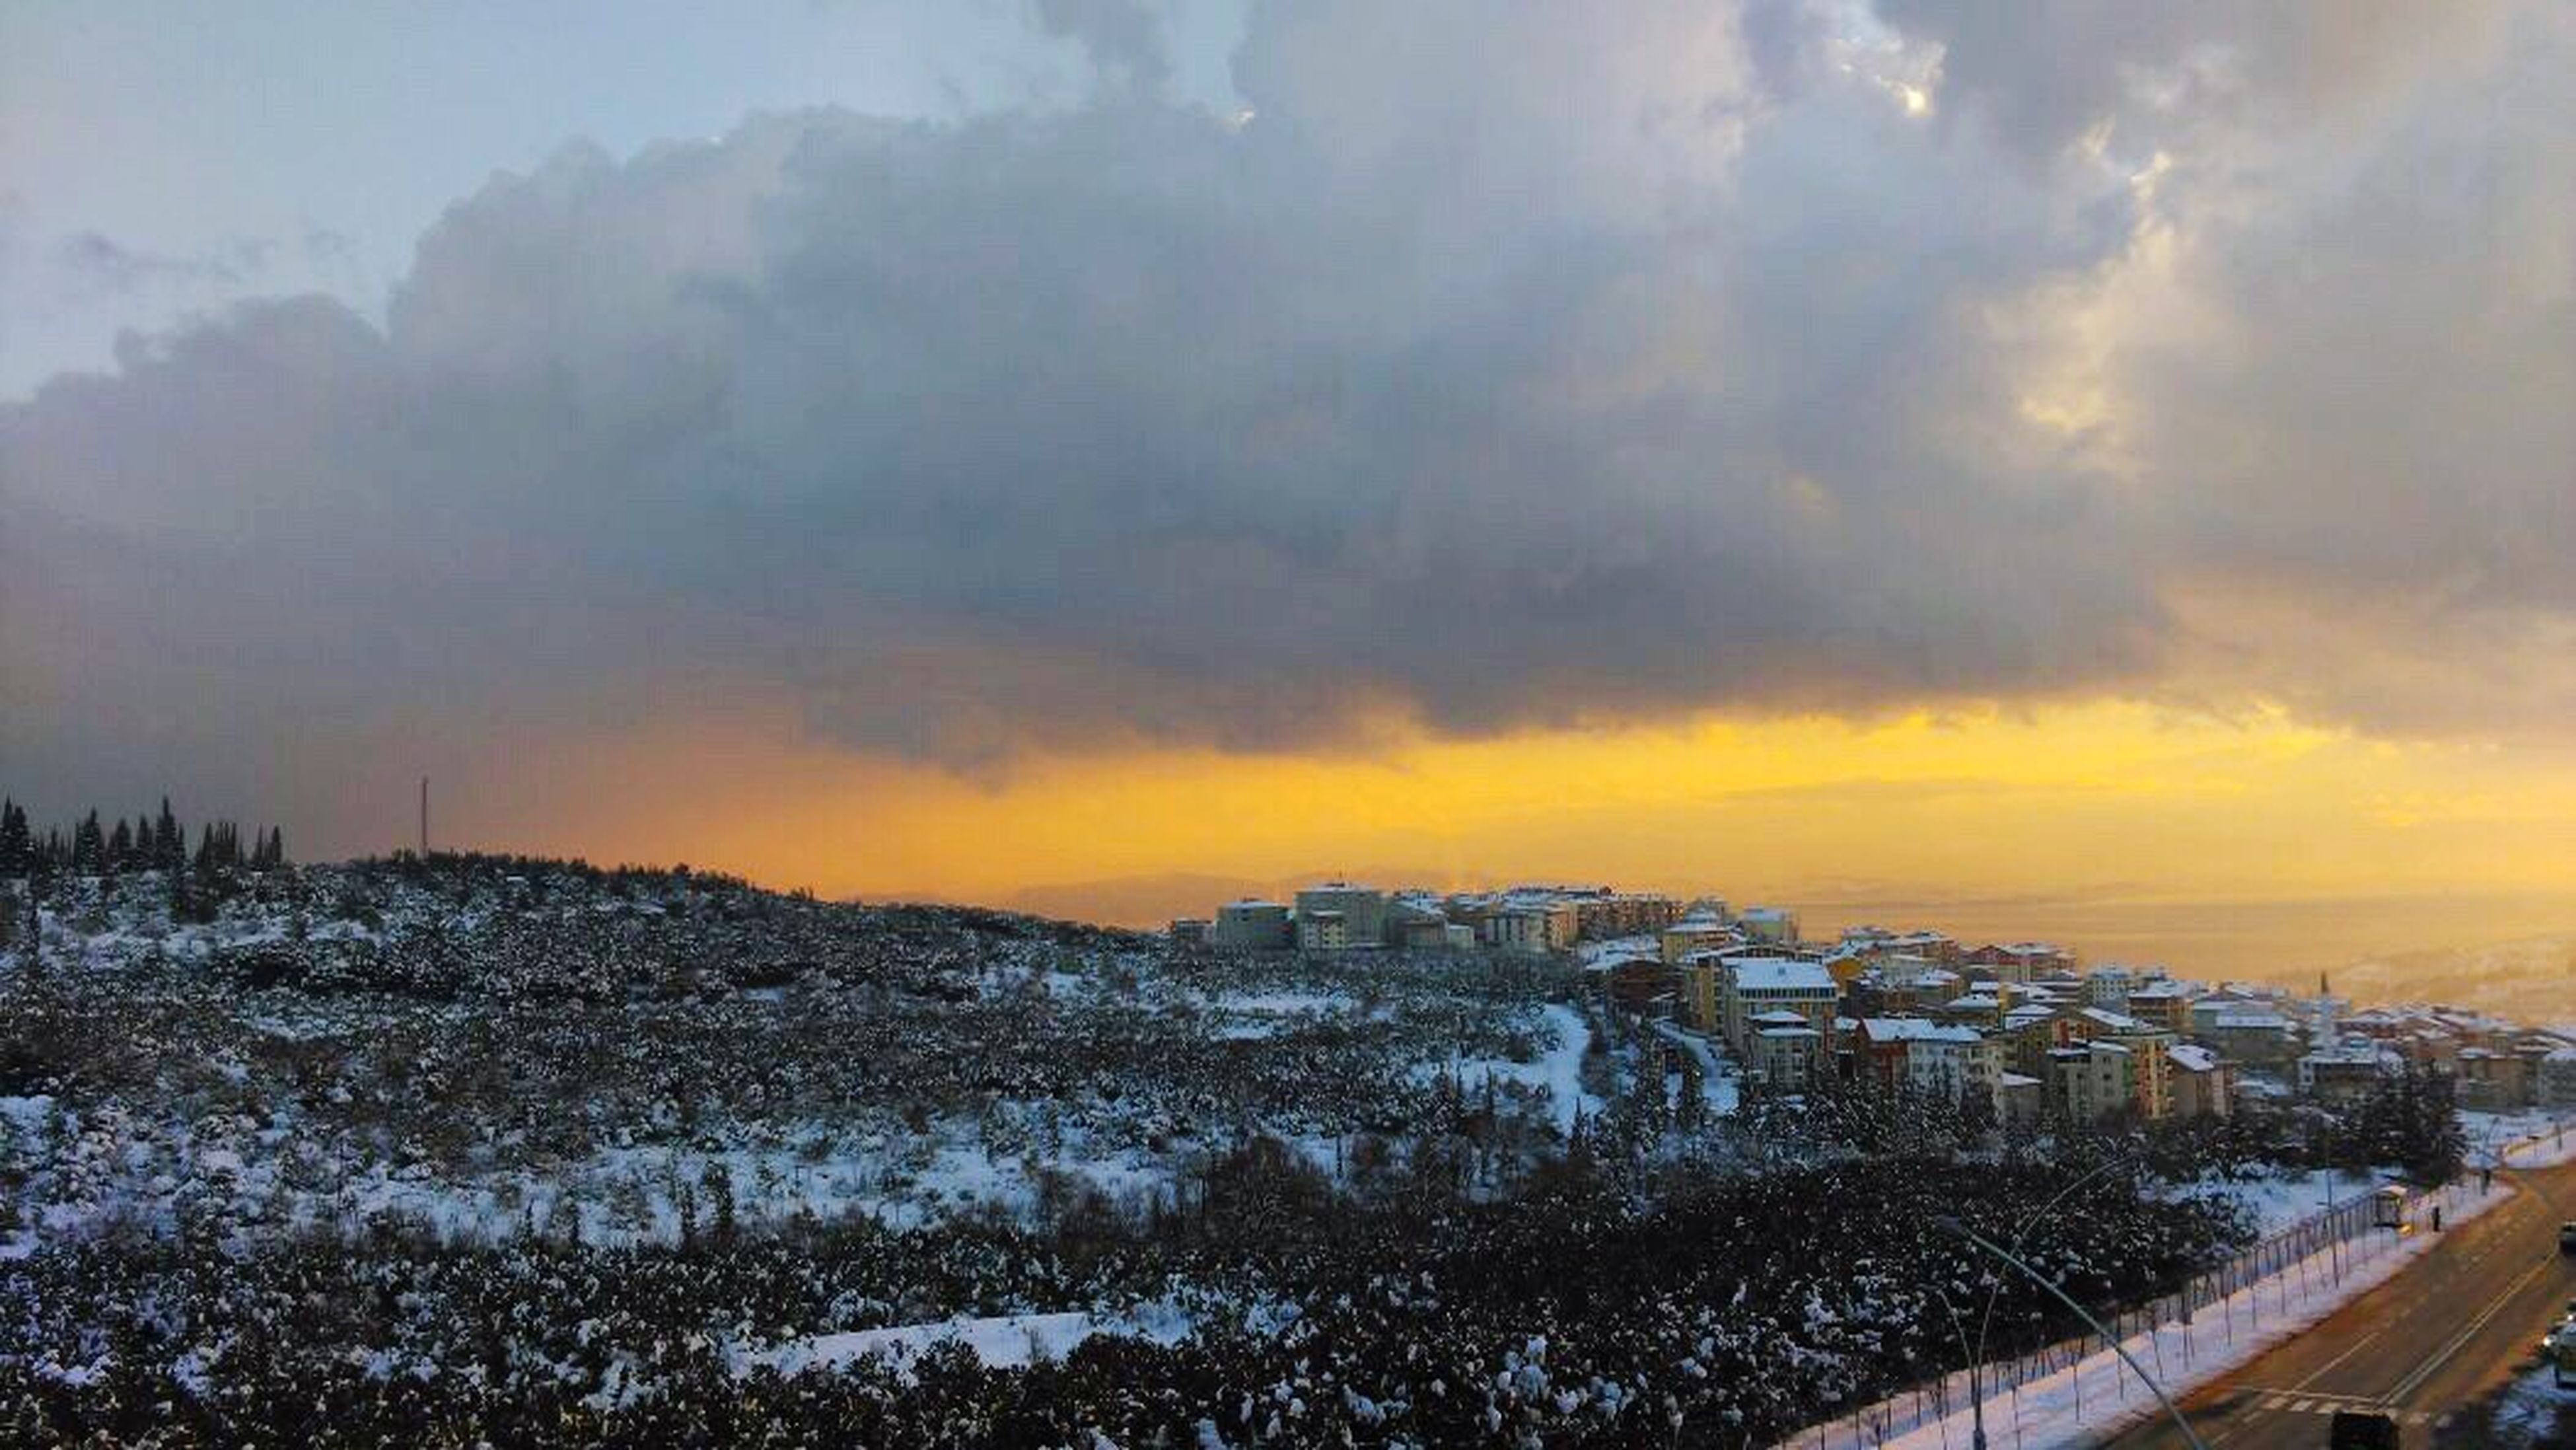 winter, snow, cold temperature, sunset, weather, sky, cloud - sky, season, scenics, beauty in nature, orange color, tranquility, tranquil scene, nature, cloudy, landscape, covering, frozen, dramatic sky, idyllic